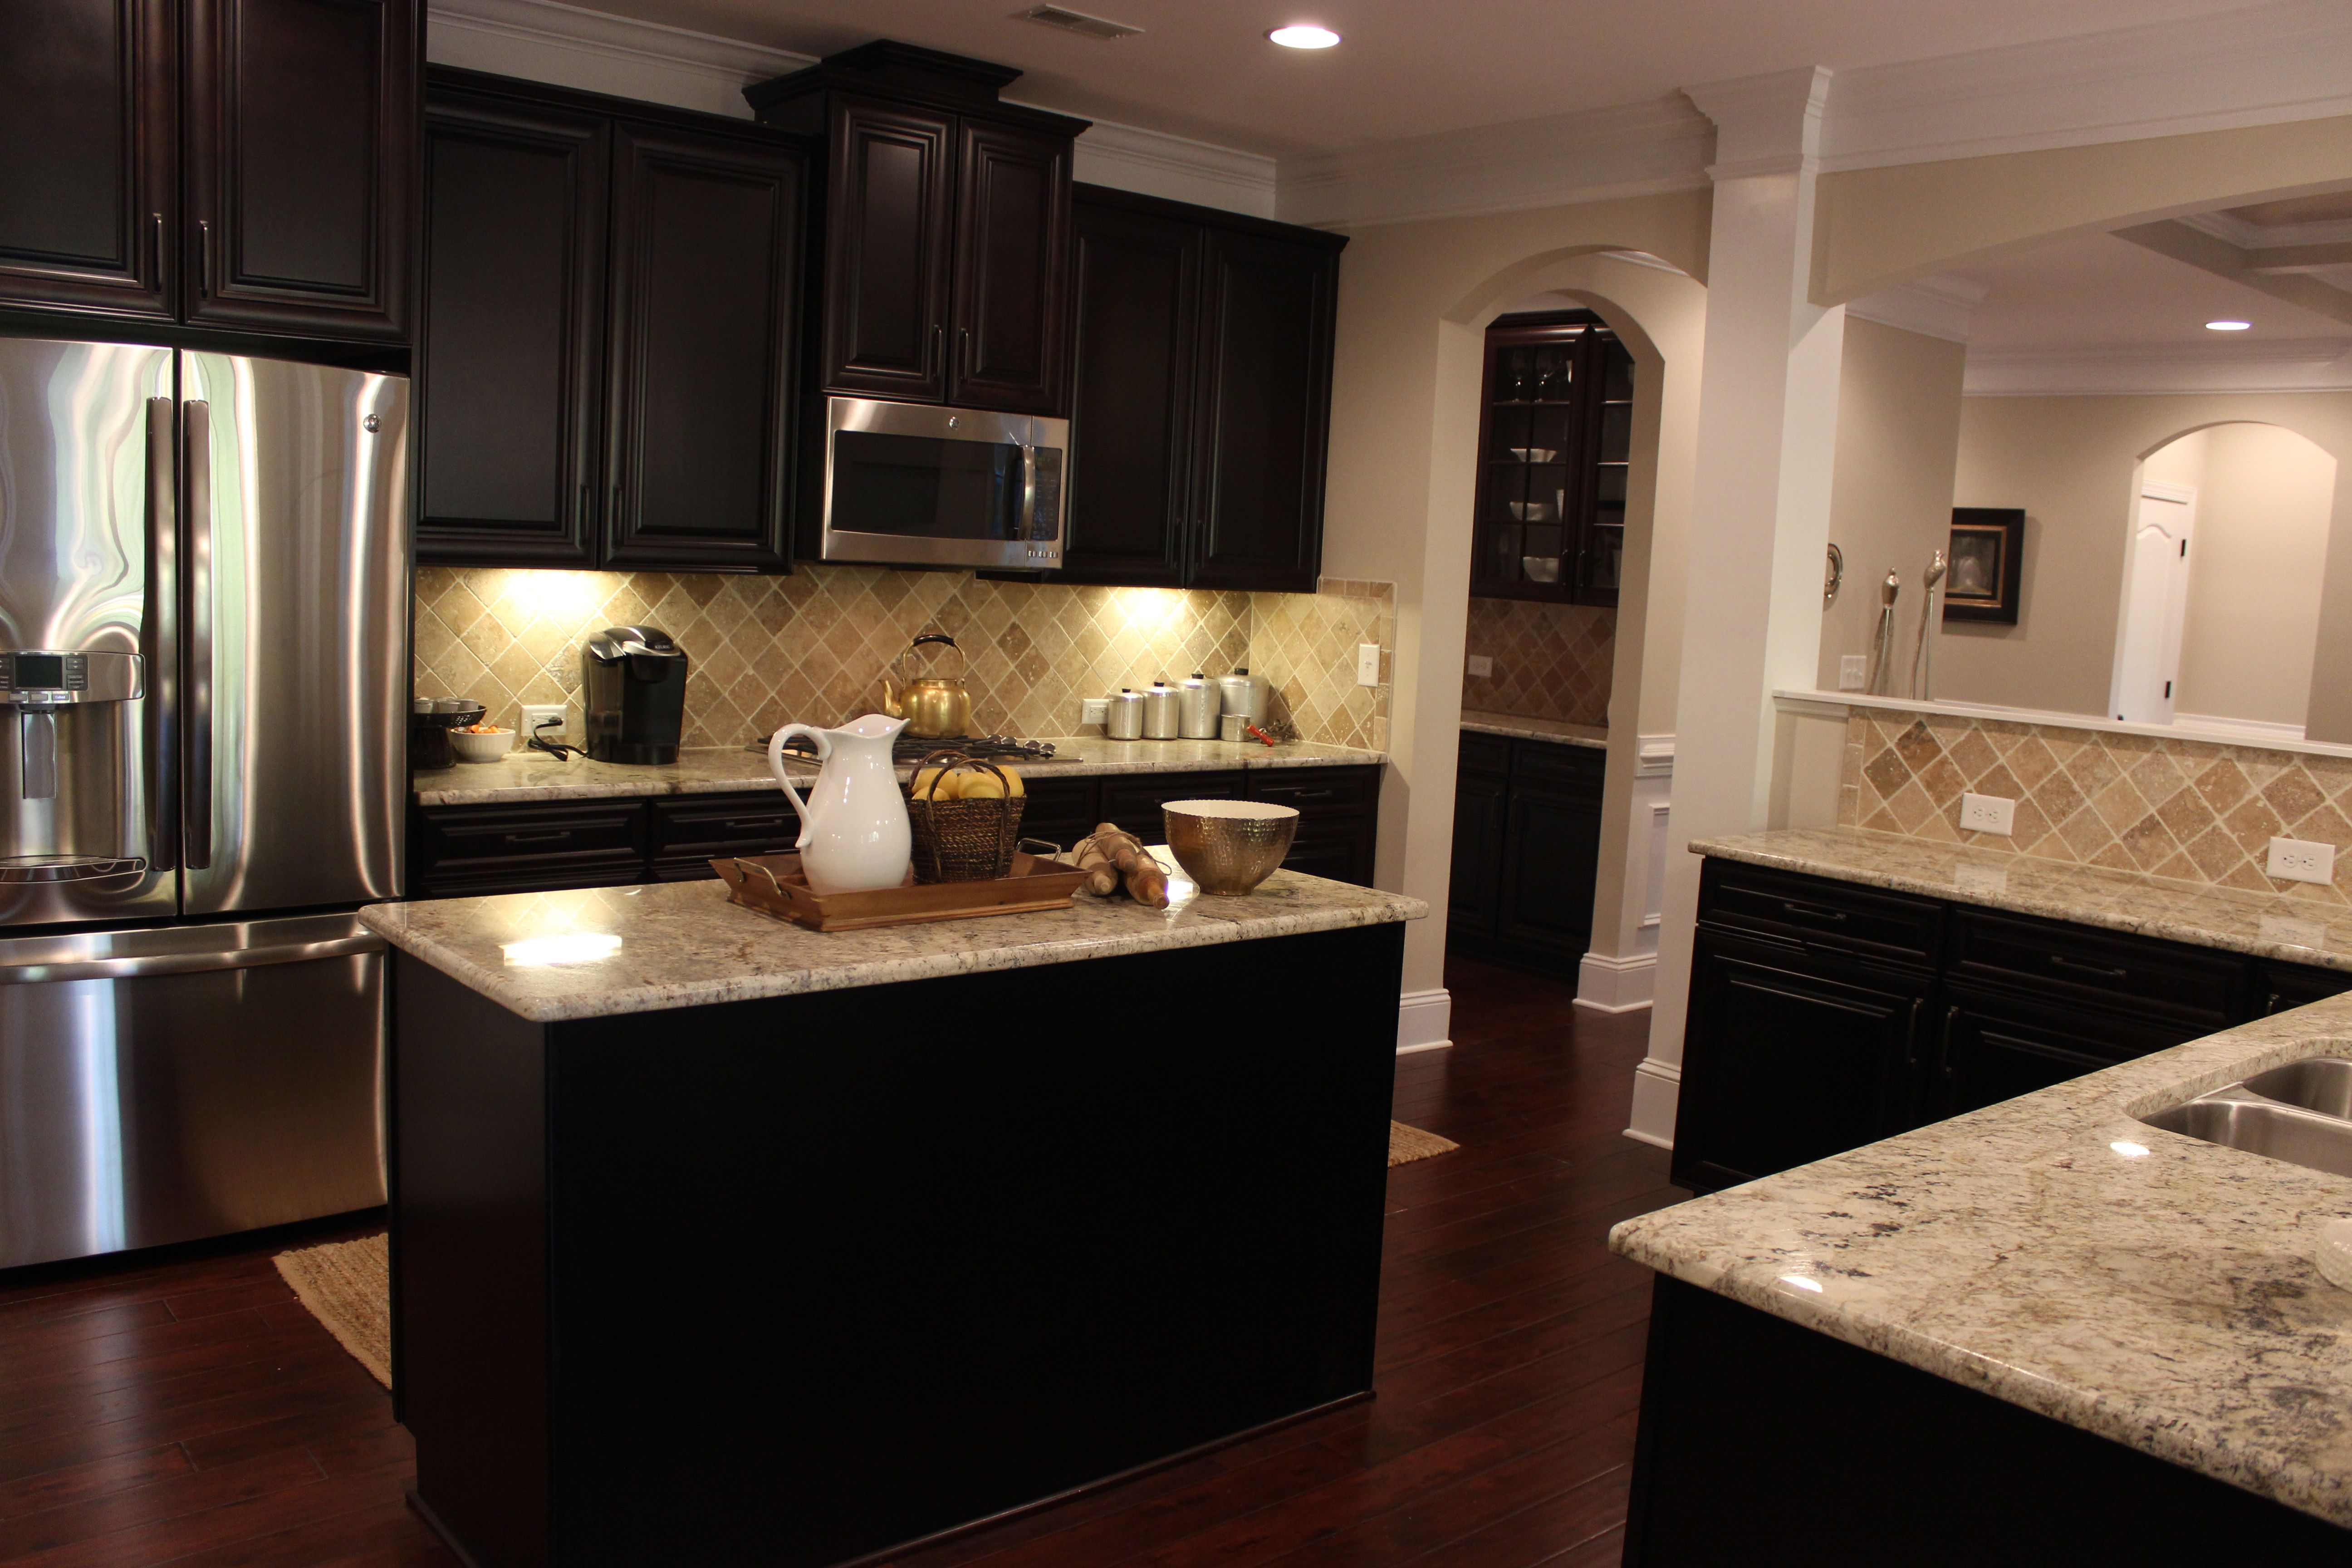 essex homes - katherine model - kitchen | design projects